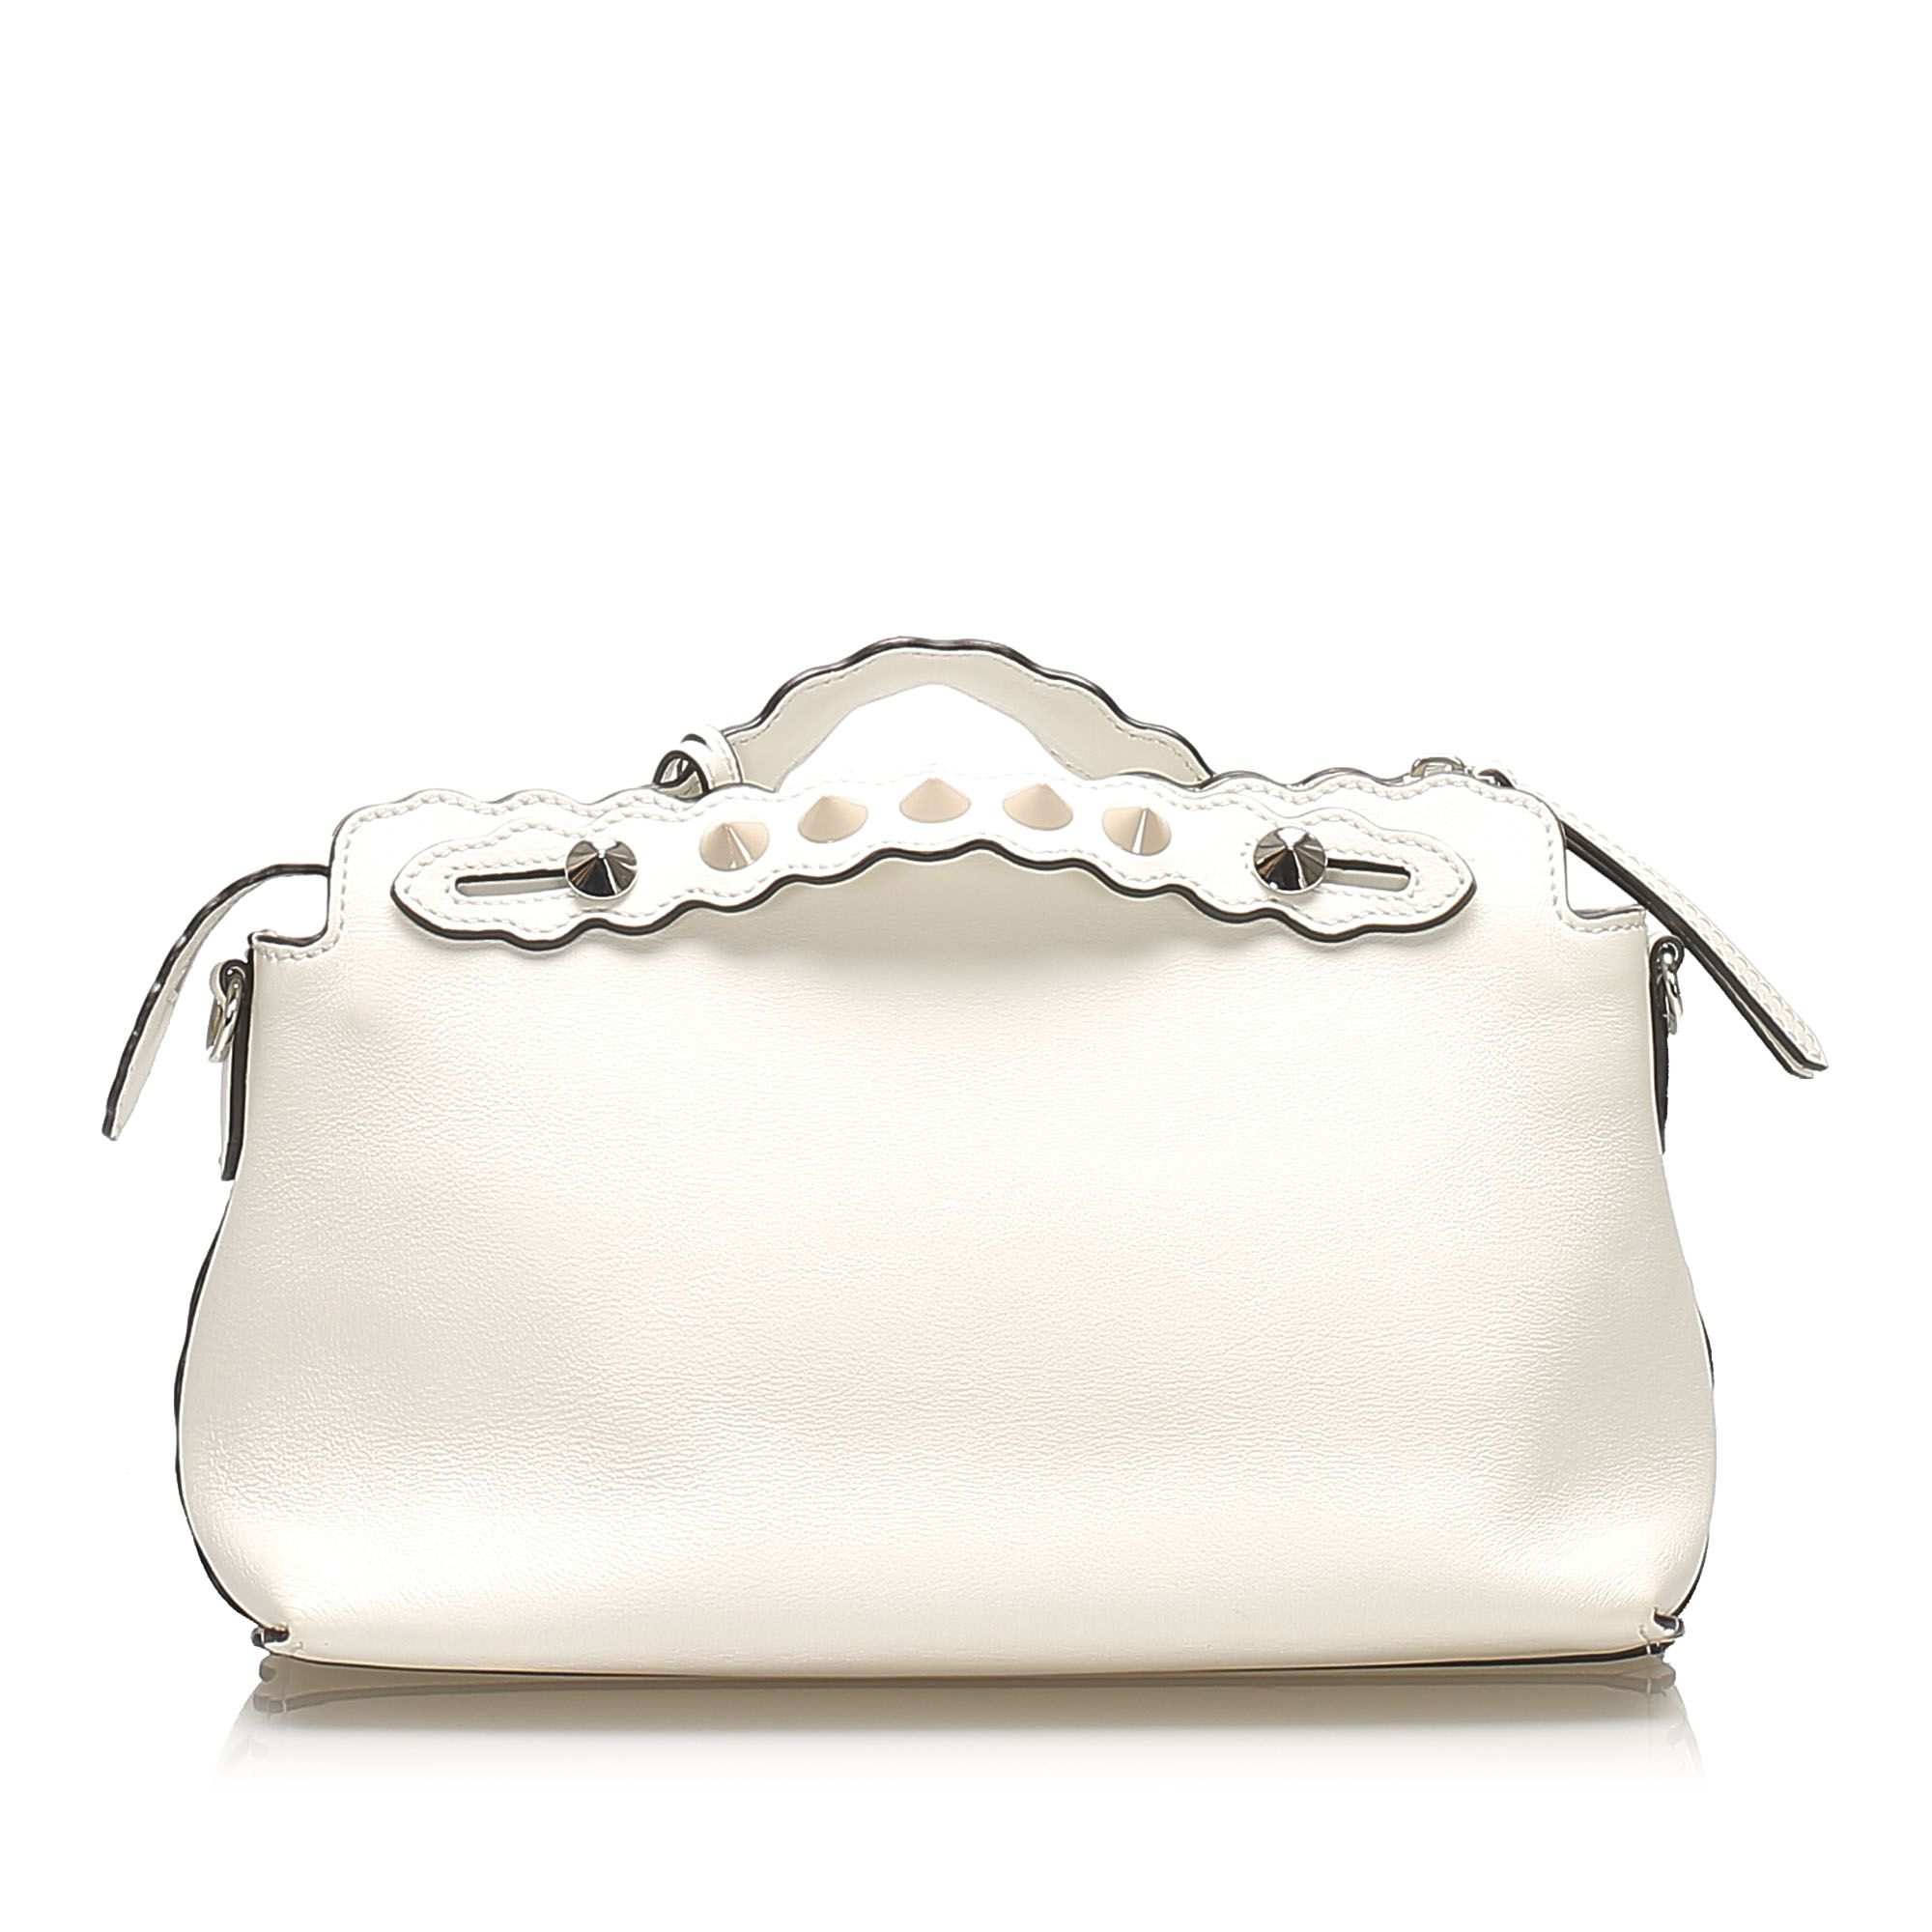 Vintage Fendi By The Way Leather Satchel White